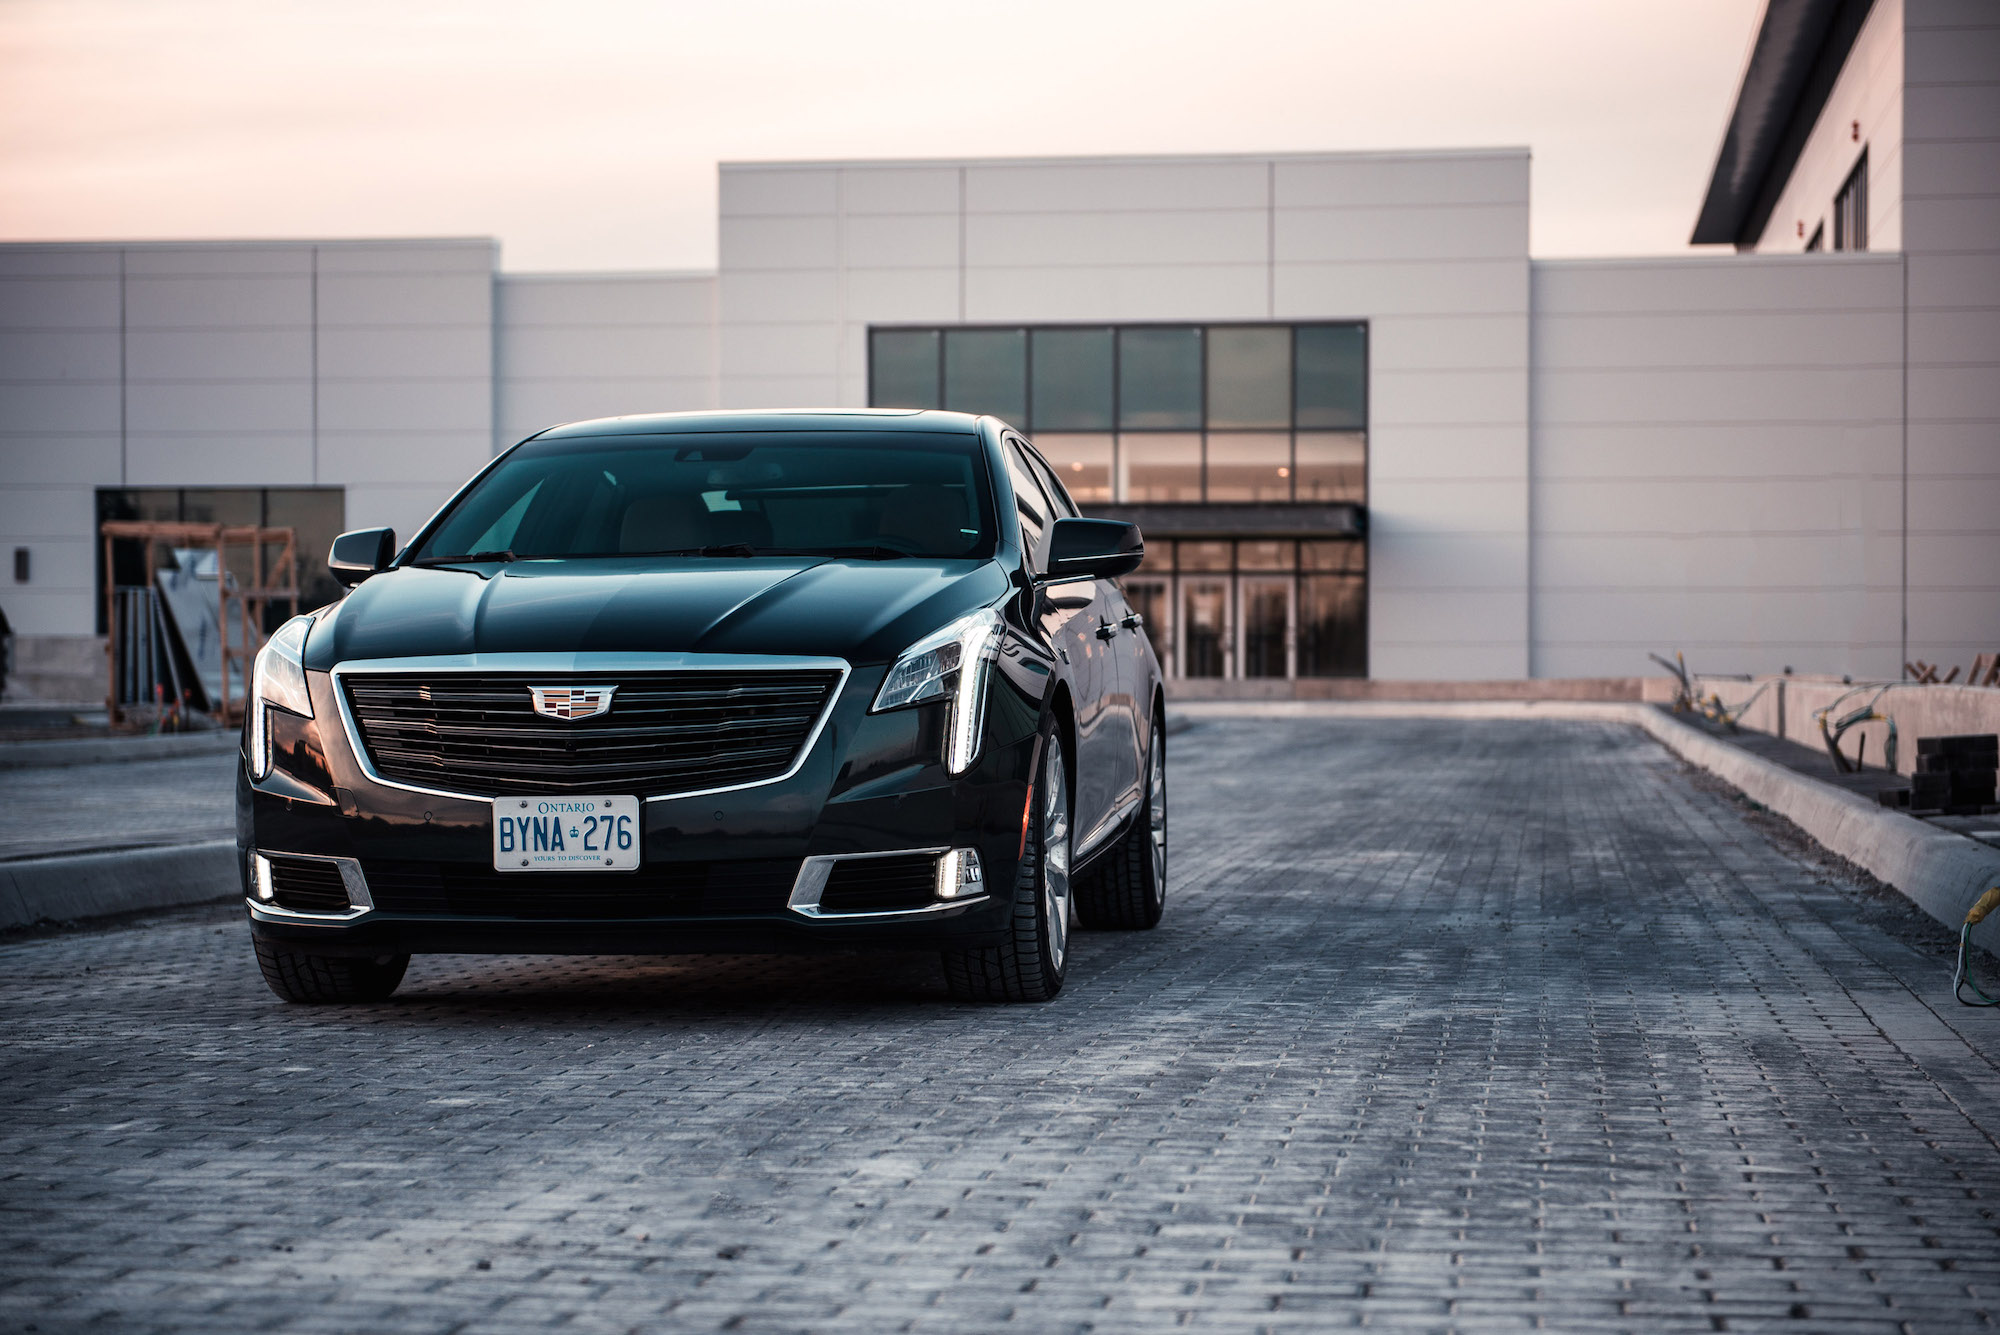 with for xts something verdict can gray pain re wheel article sedan drove job here technology special when a in i and youre we drive tested you arrives platinum tell metallic your businessinsider all v s the cadillac stone sport on